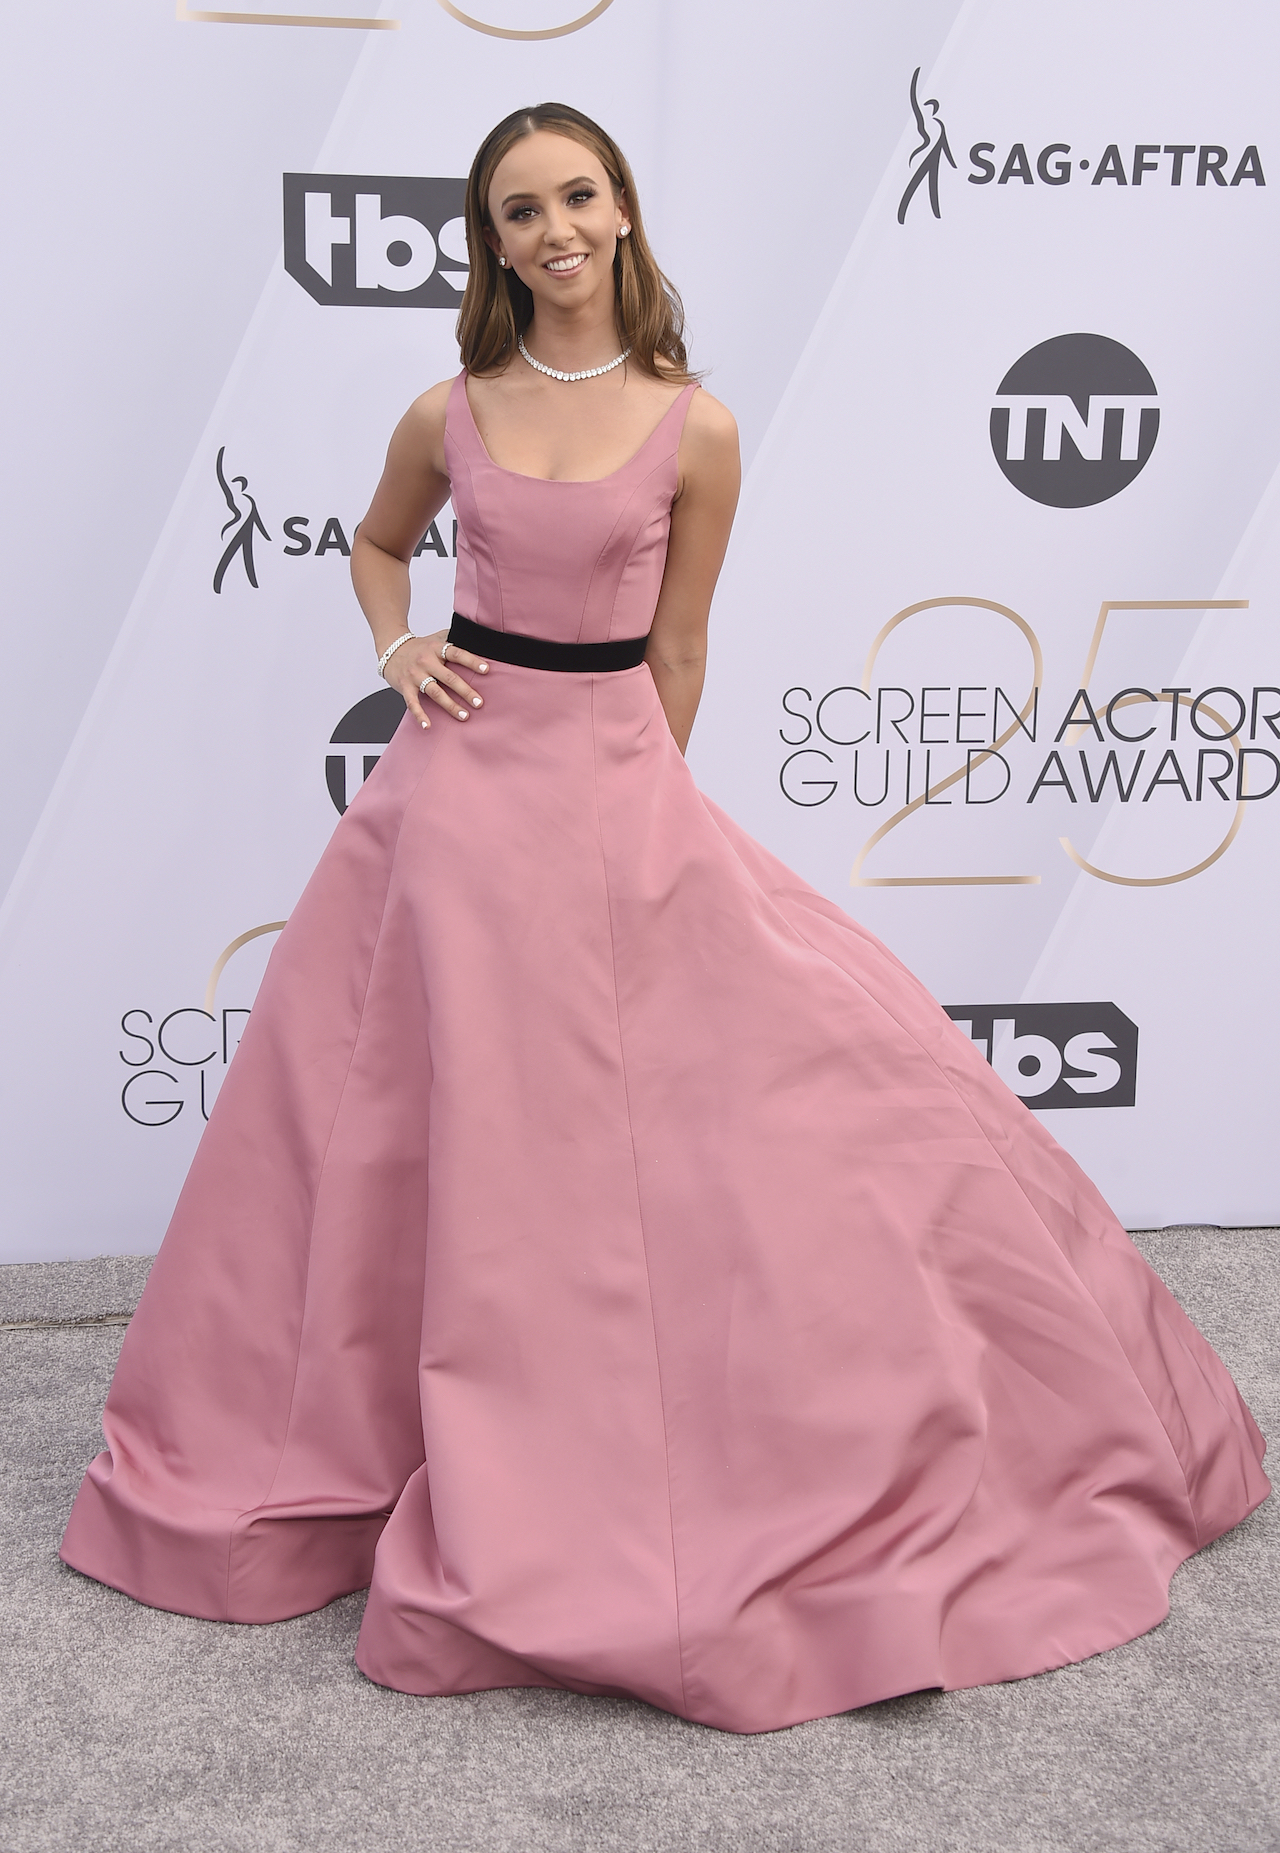 <div class='meta'><div class='origin-logo' data-origin='AP'></div><span class='caption-text' data-credit='Jordan Strauss/Invision/AP'>Britt Baron arrives at the 25th annual Screen Actors Guild Awards at the Shrine Auditorium & Expo Hall on Sunday, Jan. 27, 2019, in Los Angeles.</span></div>